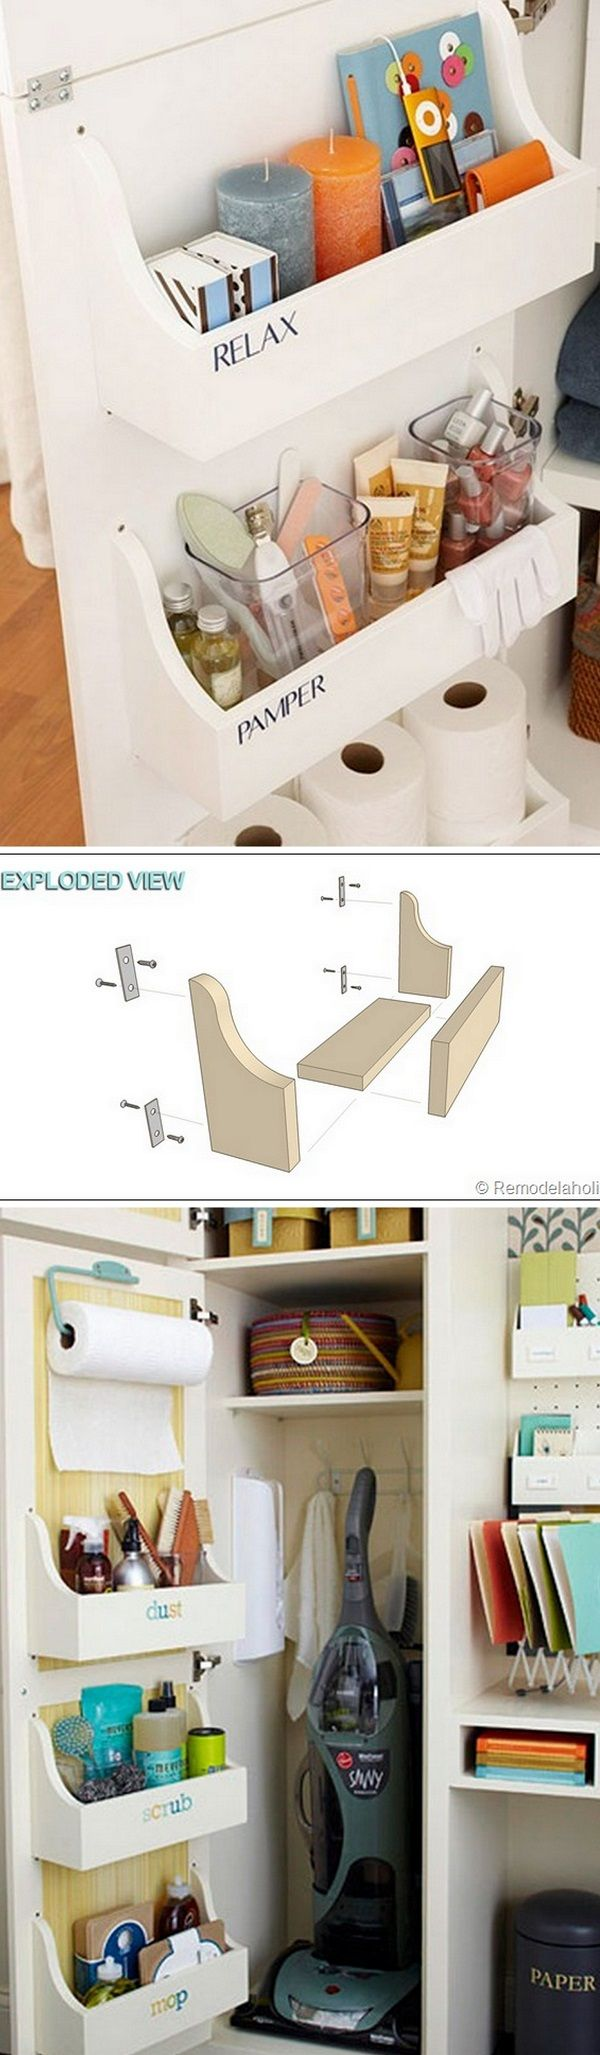 Check out how to easily build this DIY cabinet door storage bin @istandarddesign